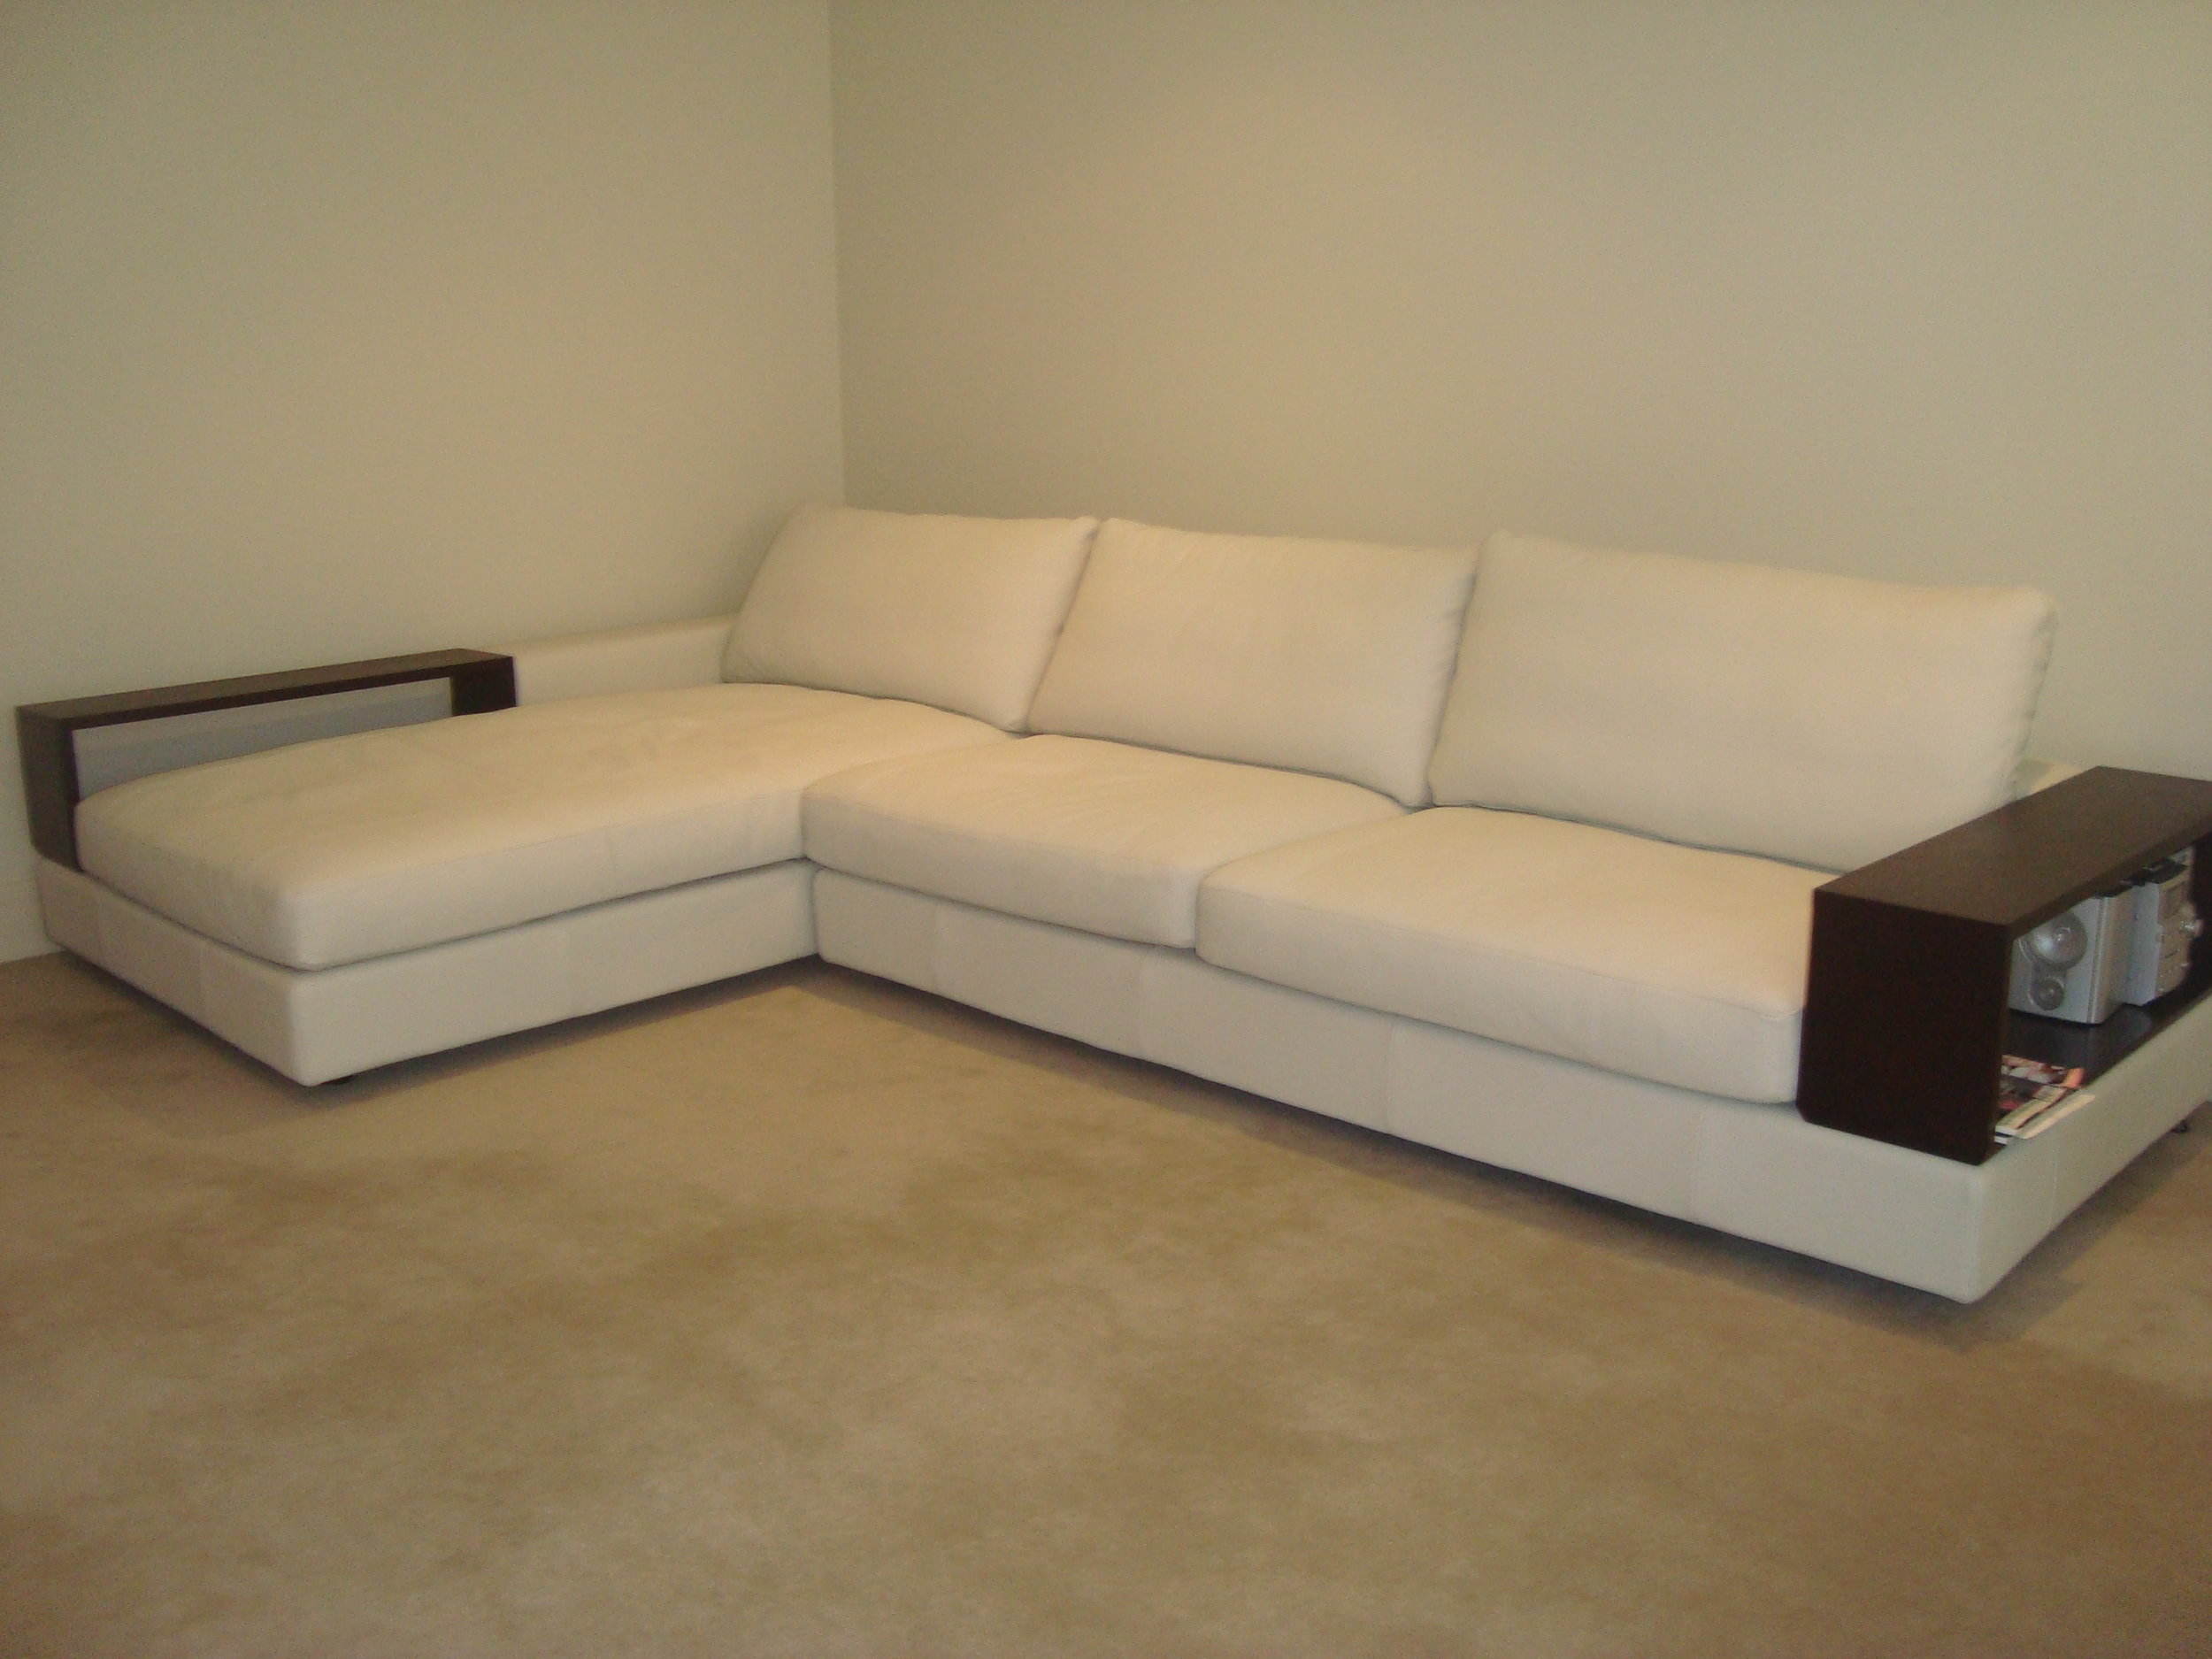 BEFORE. This piece from King living is a blank canvas.